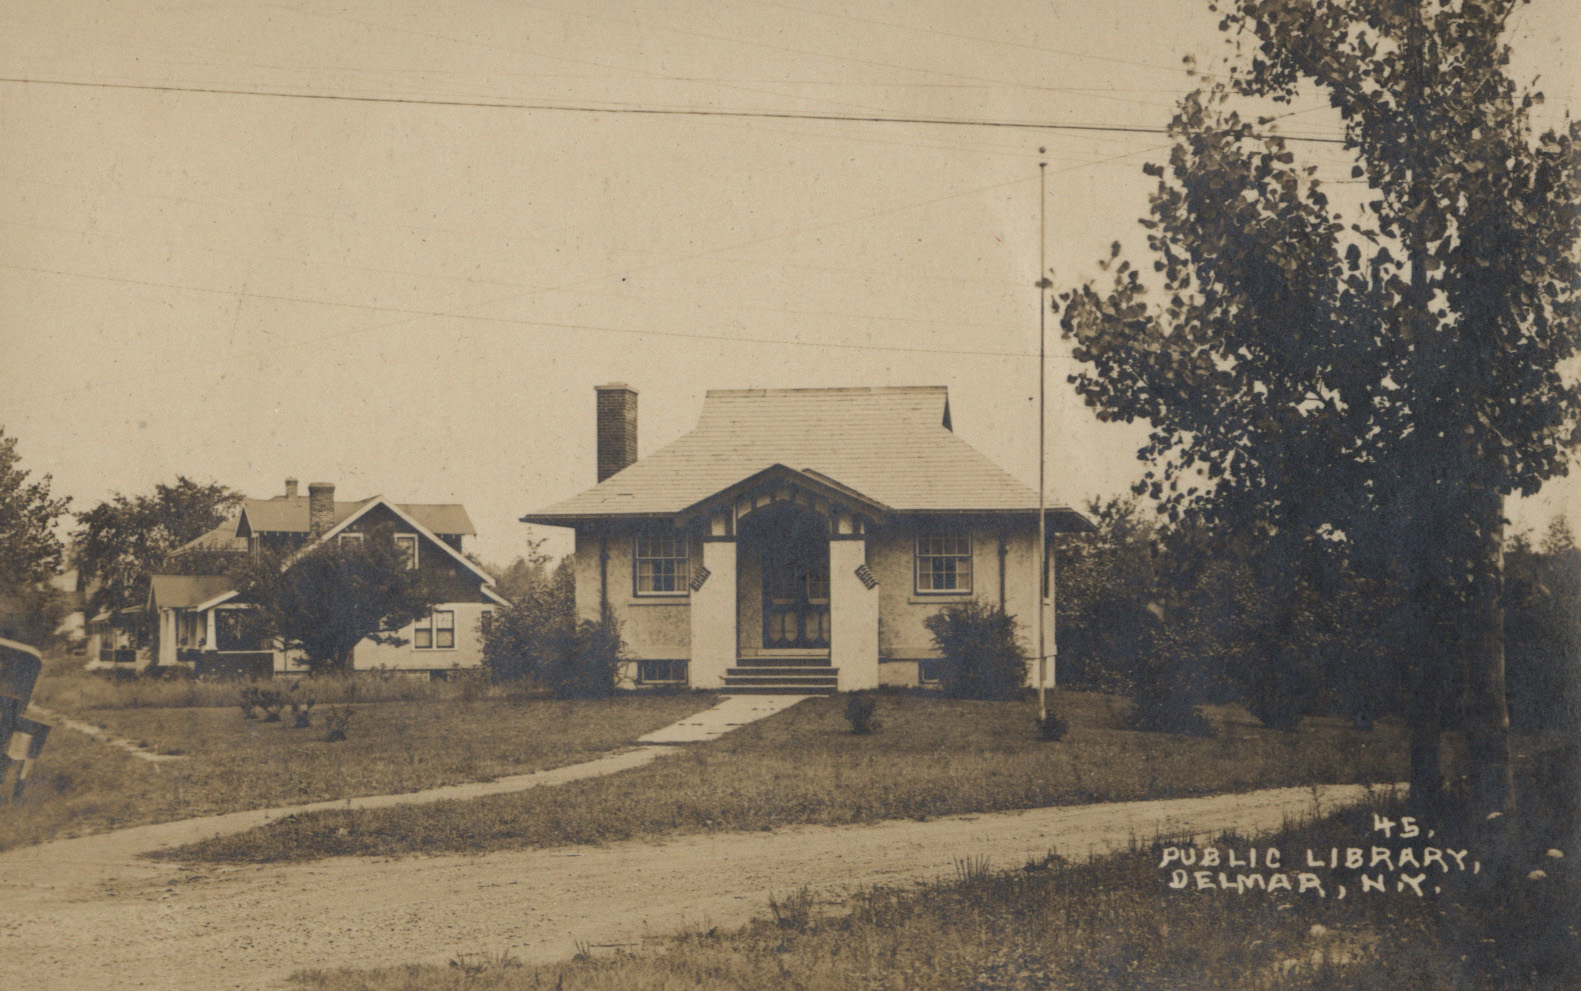 Sepia toned photo of Delmar Free Library in 1925